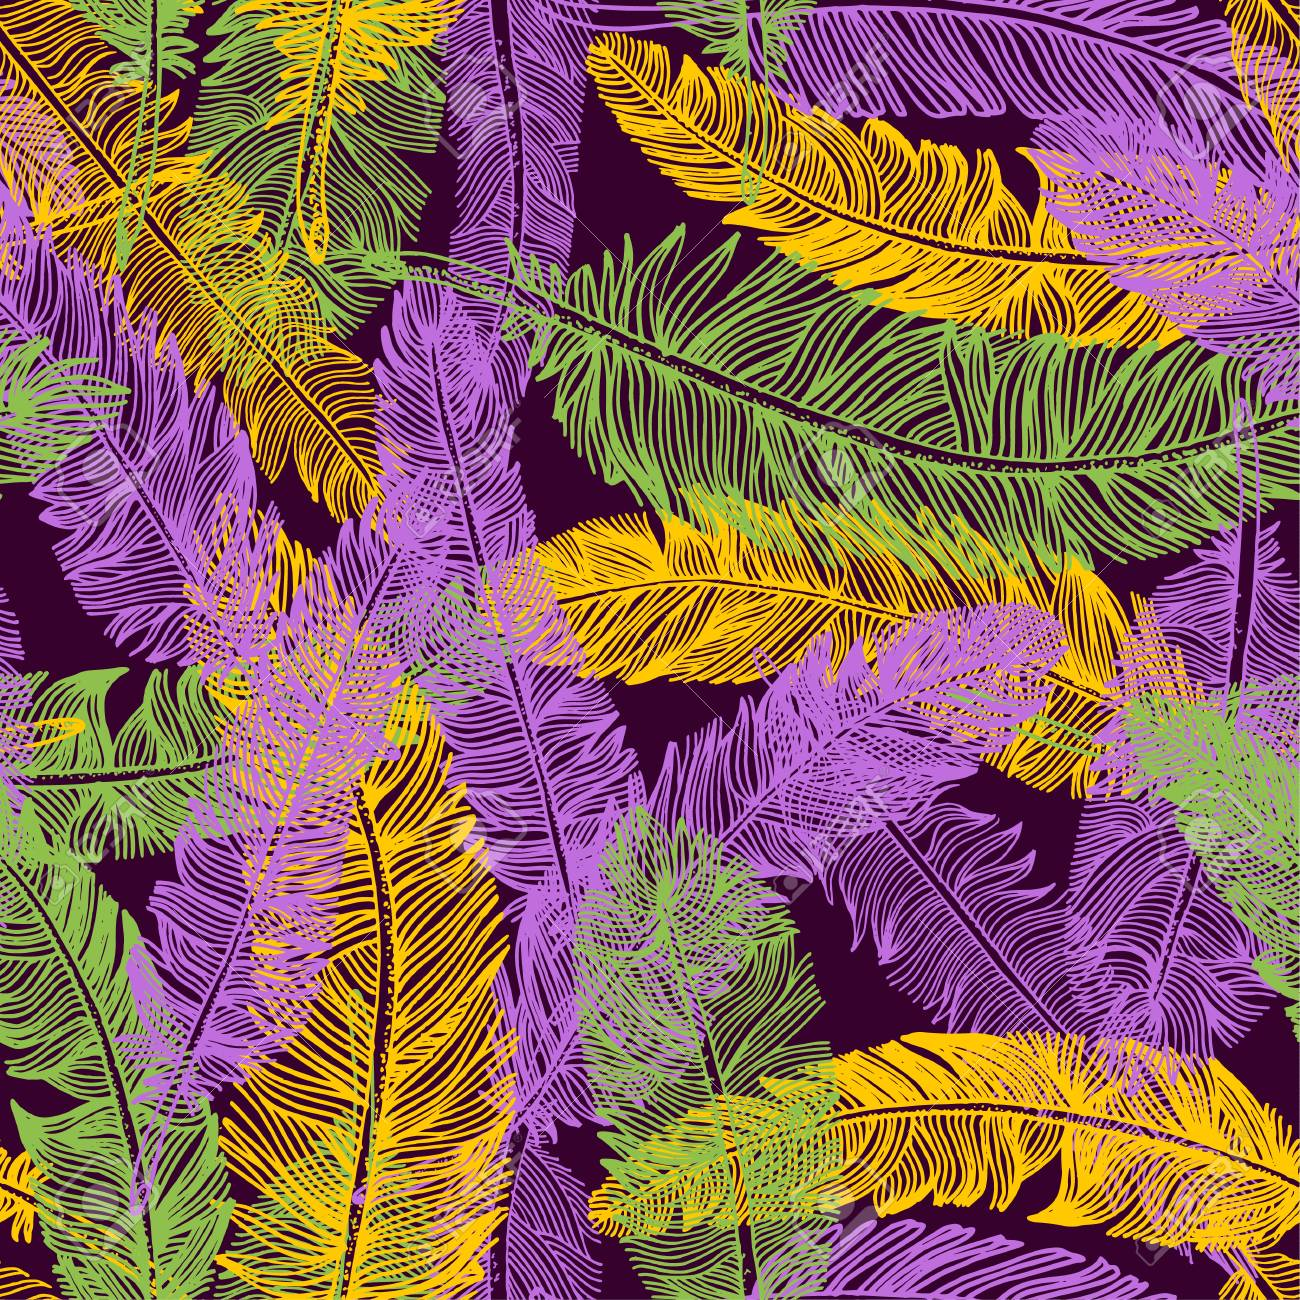 Hand Drawn Seamless Pattern Of Feathers Mardi Gras Colors 1300x1300